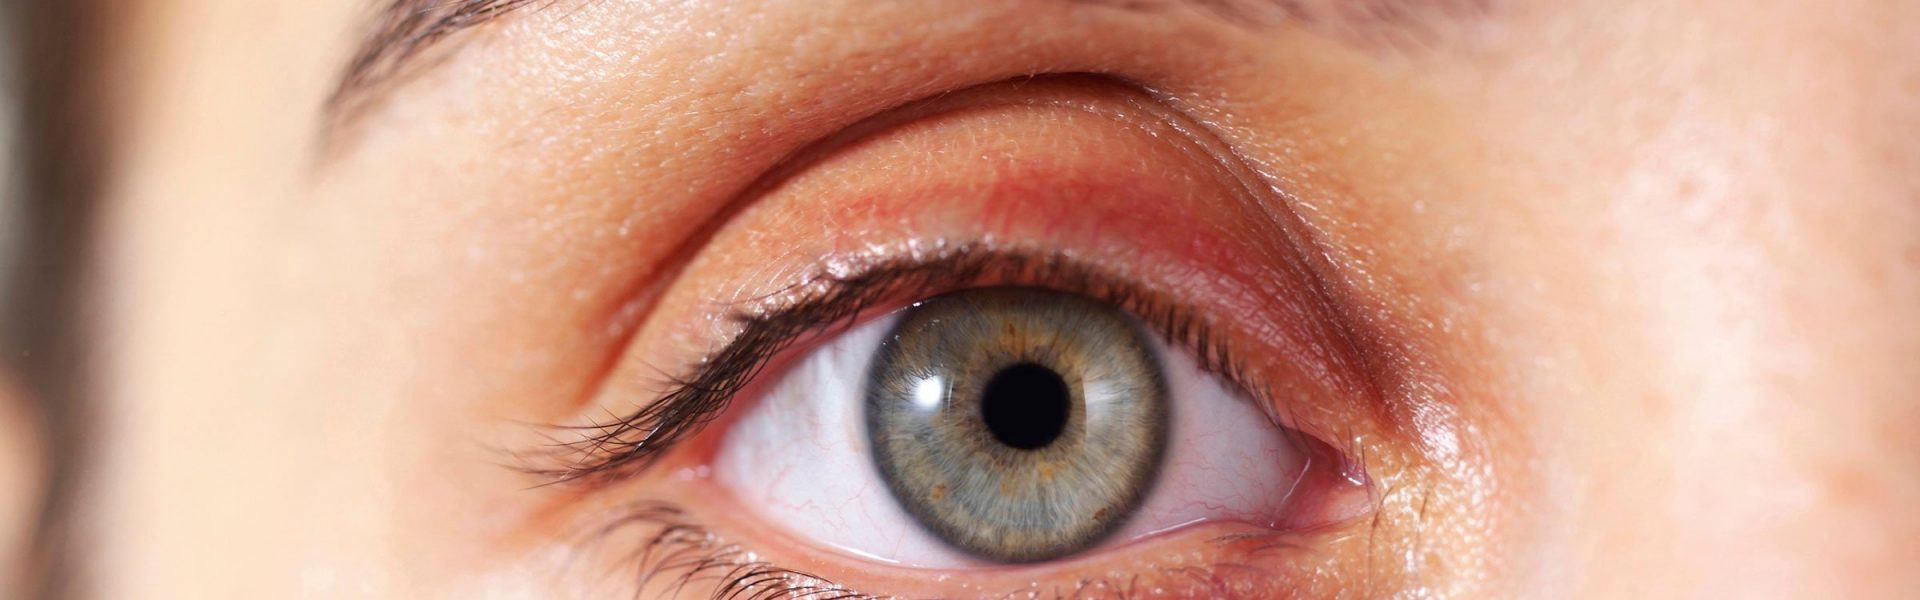 Do I Have Glaucoma Symptoms? What To Know About This Eye Disease